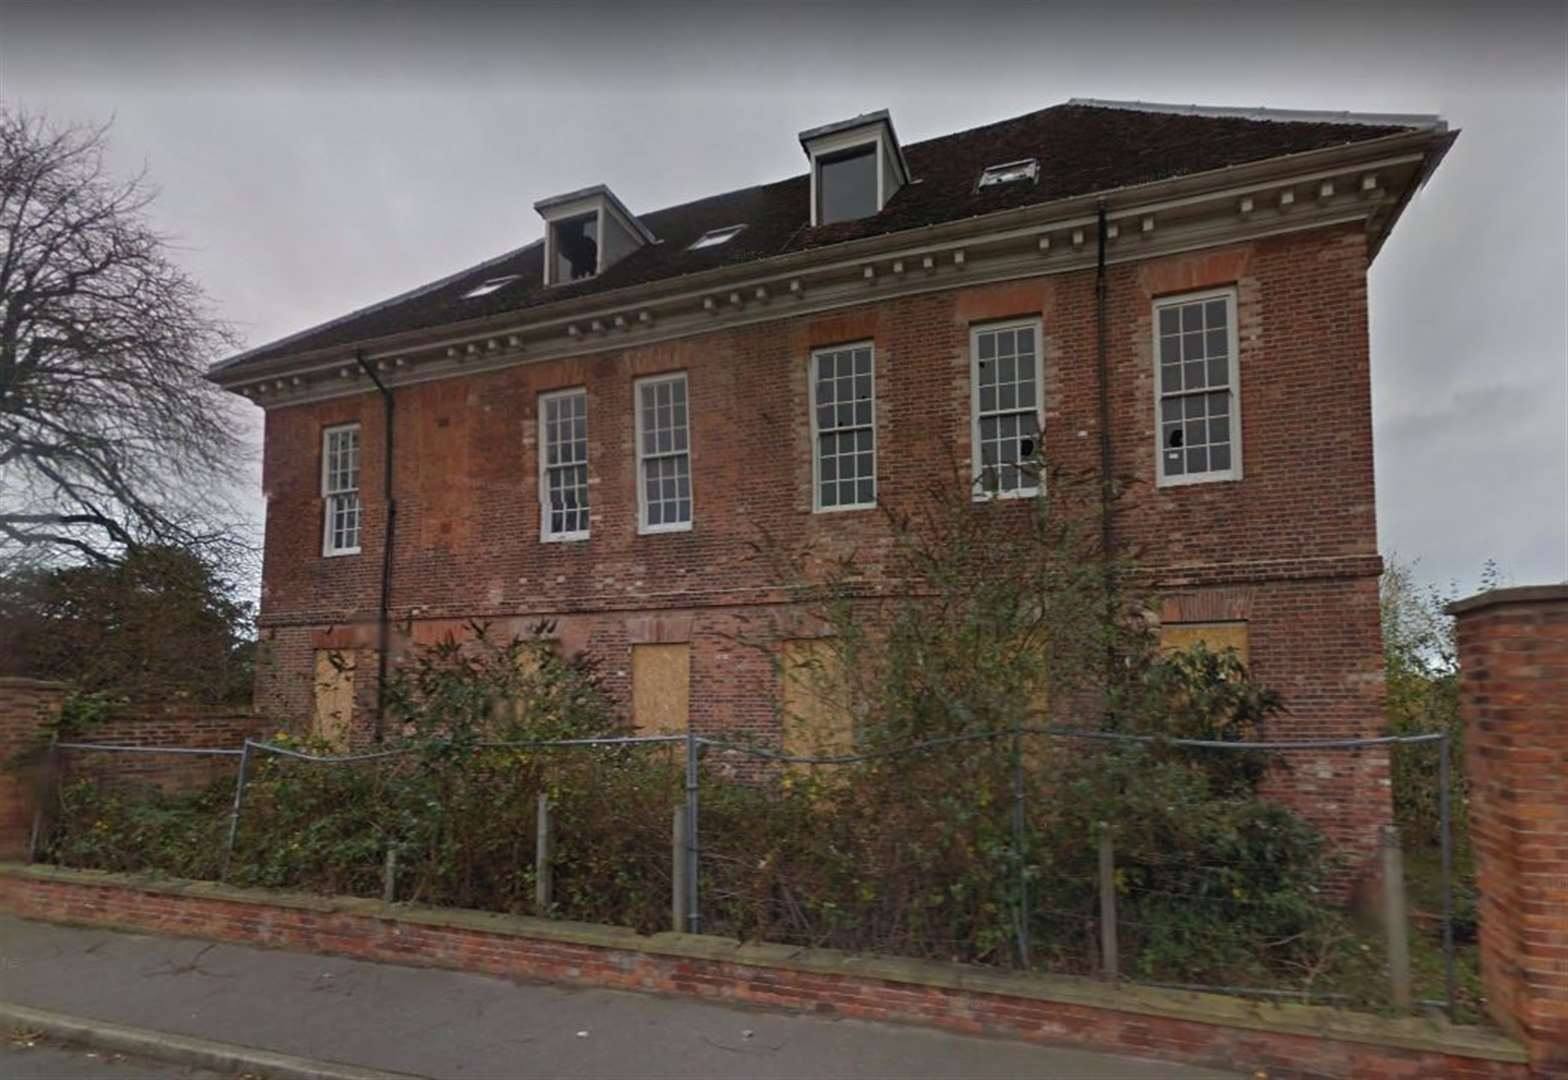 Three developers with 'impressive' bids for Ollerton Hall interviewed by district council